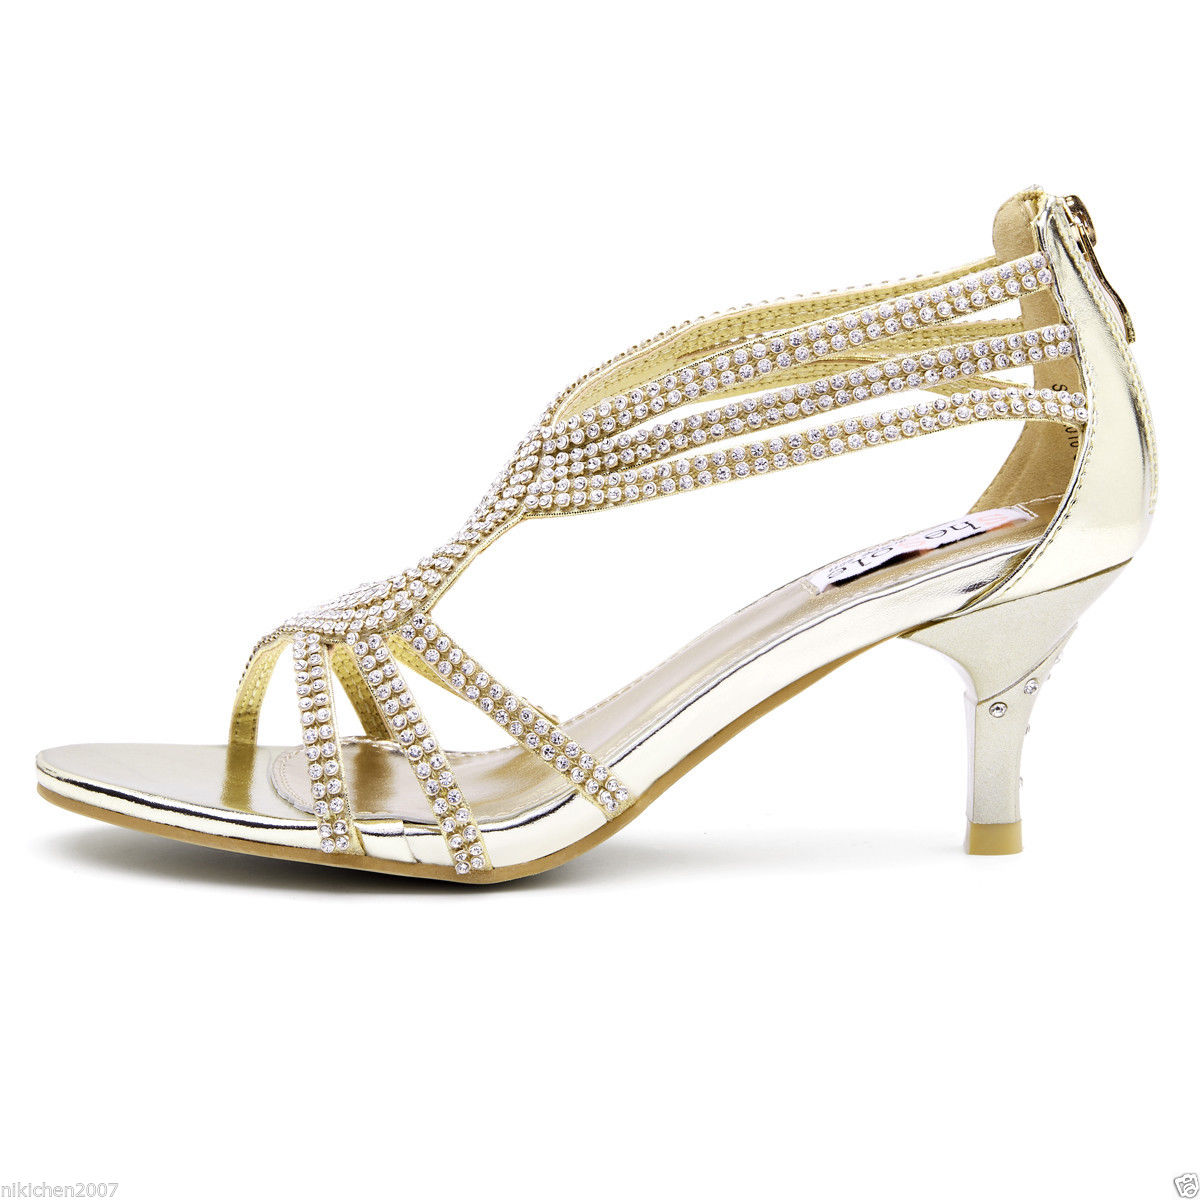 Shesole Womens Gold Metallic Kitten HEELS Strappy Diamantes Zip ... ed2c557f25a8